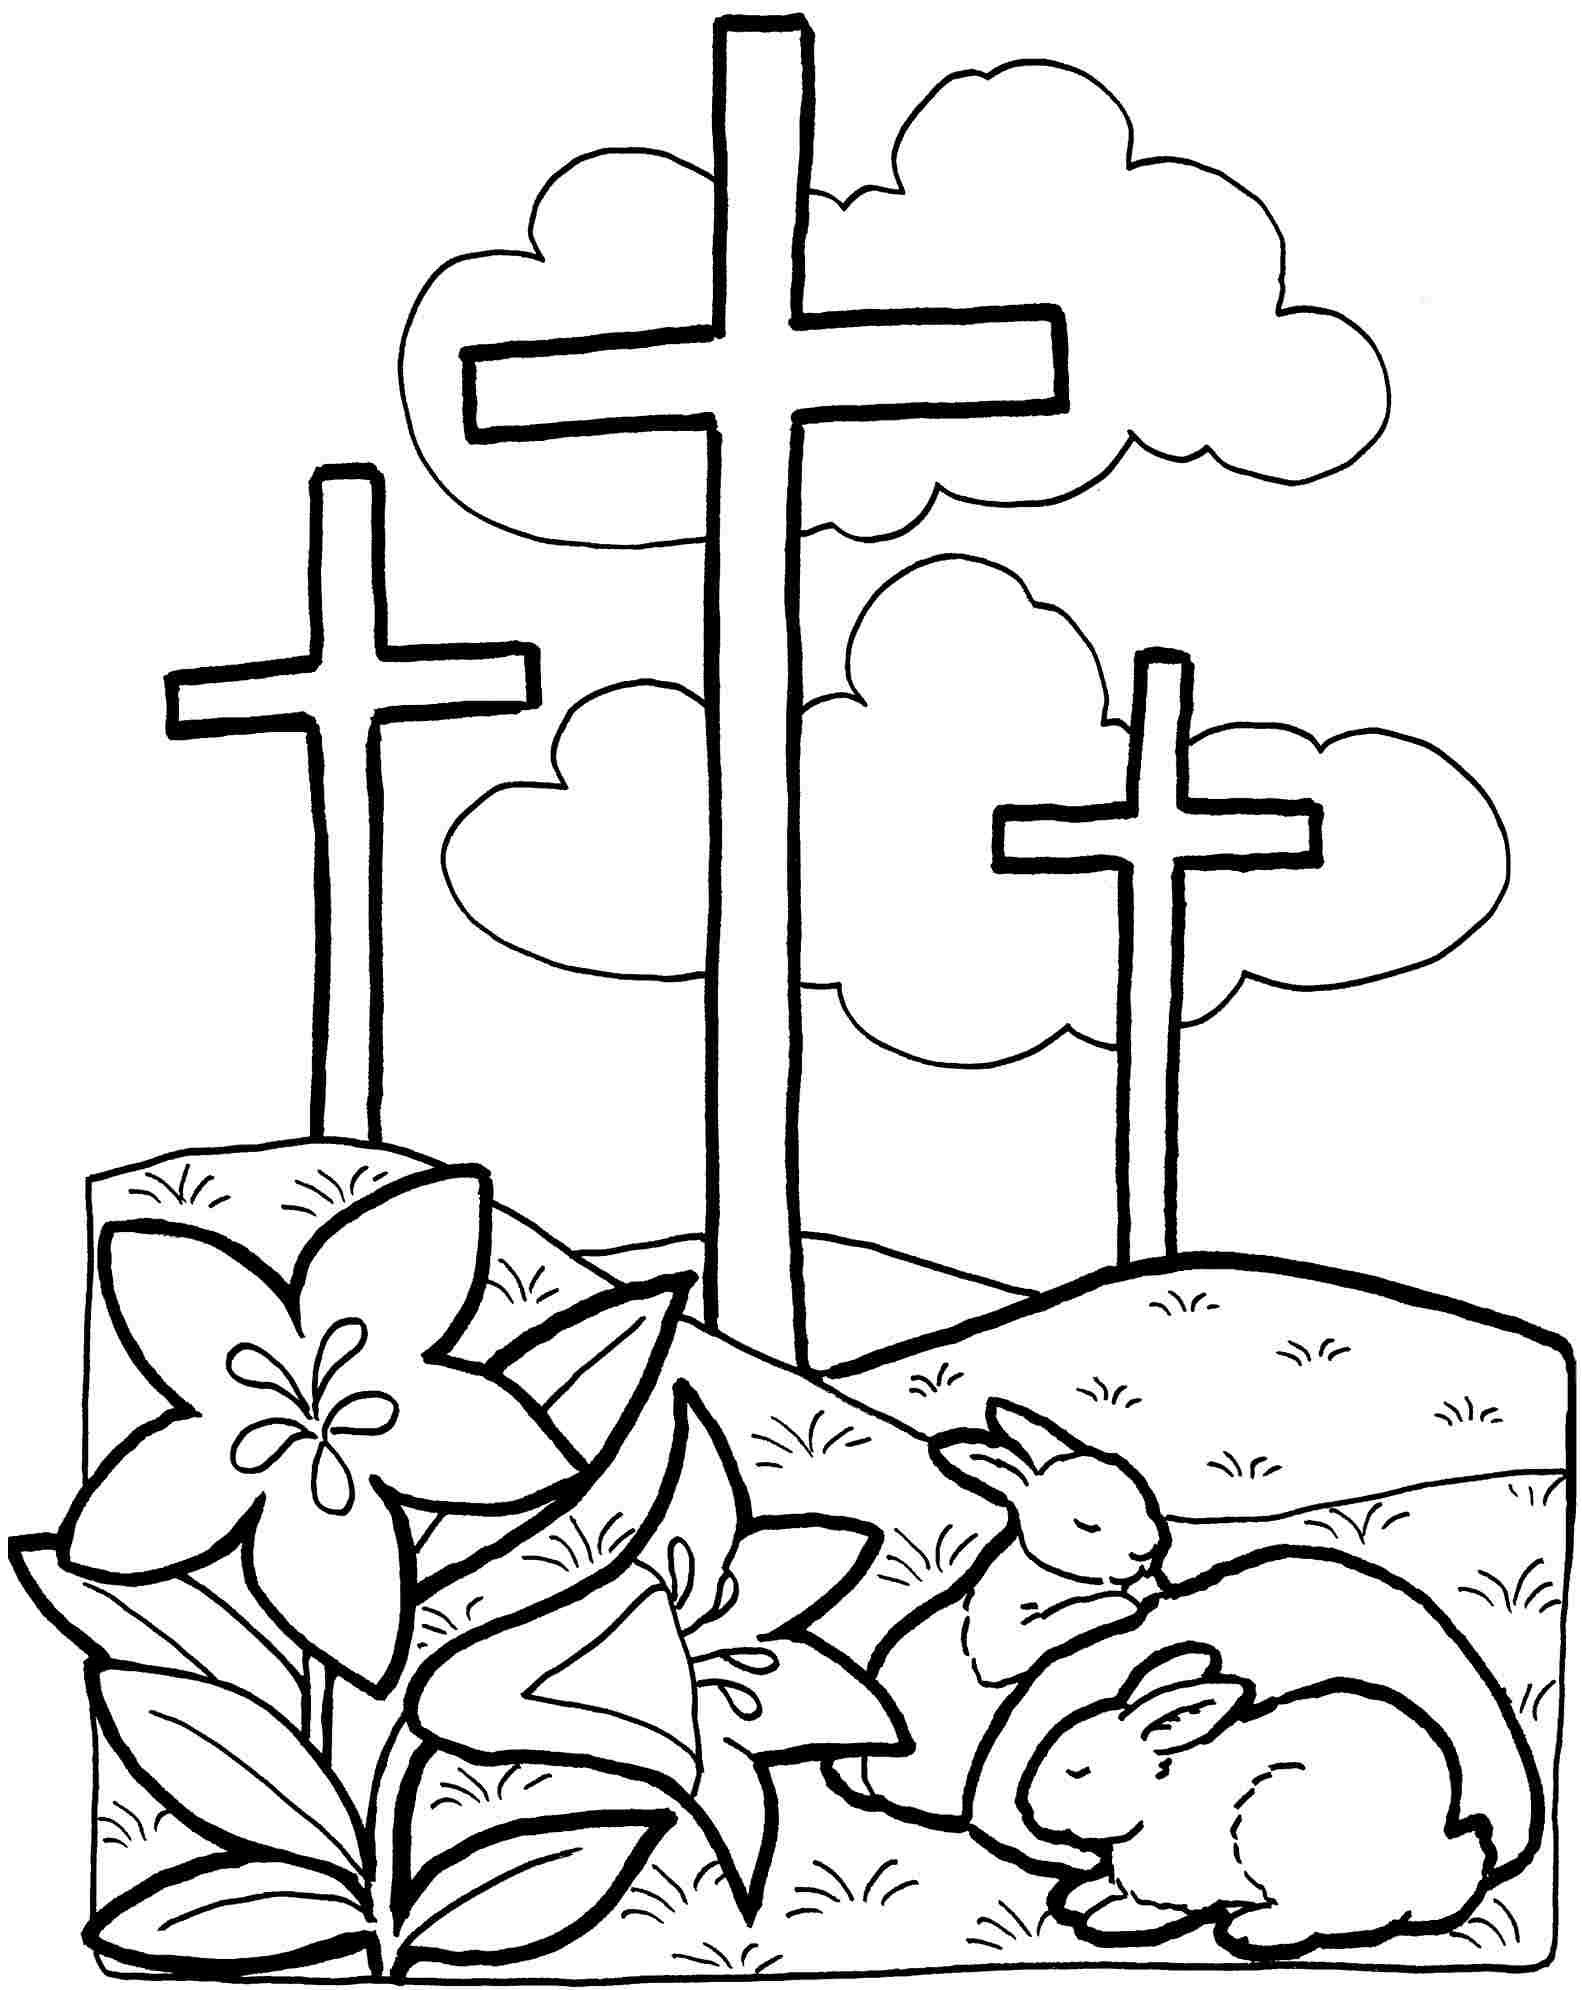 Pin By Karen Withrow On Life Camp Pinterest Easter Colouring